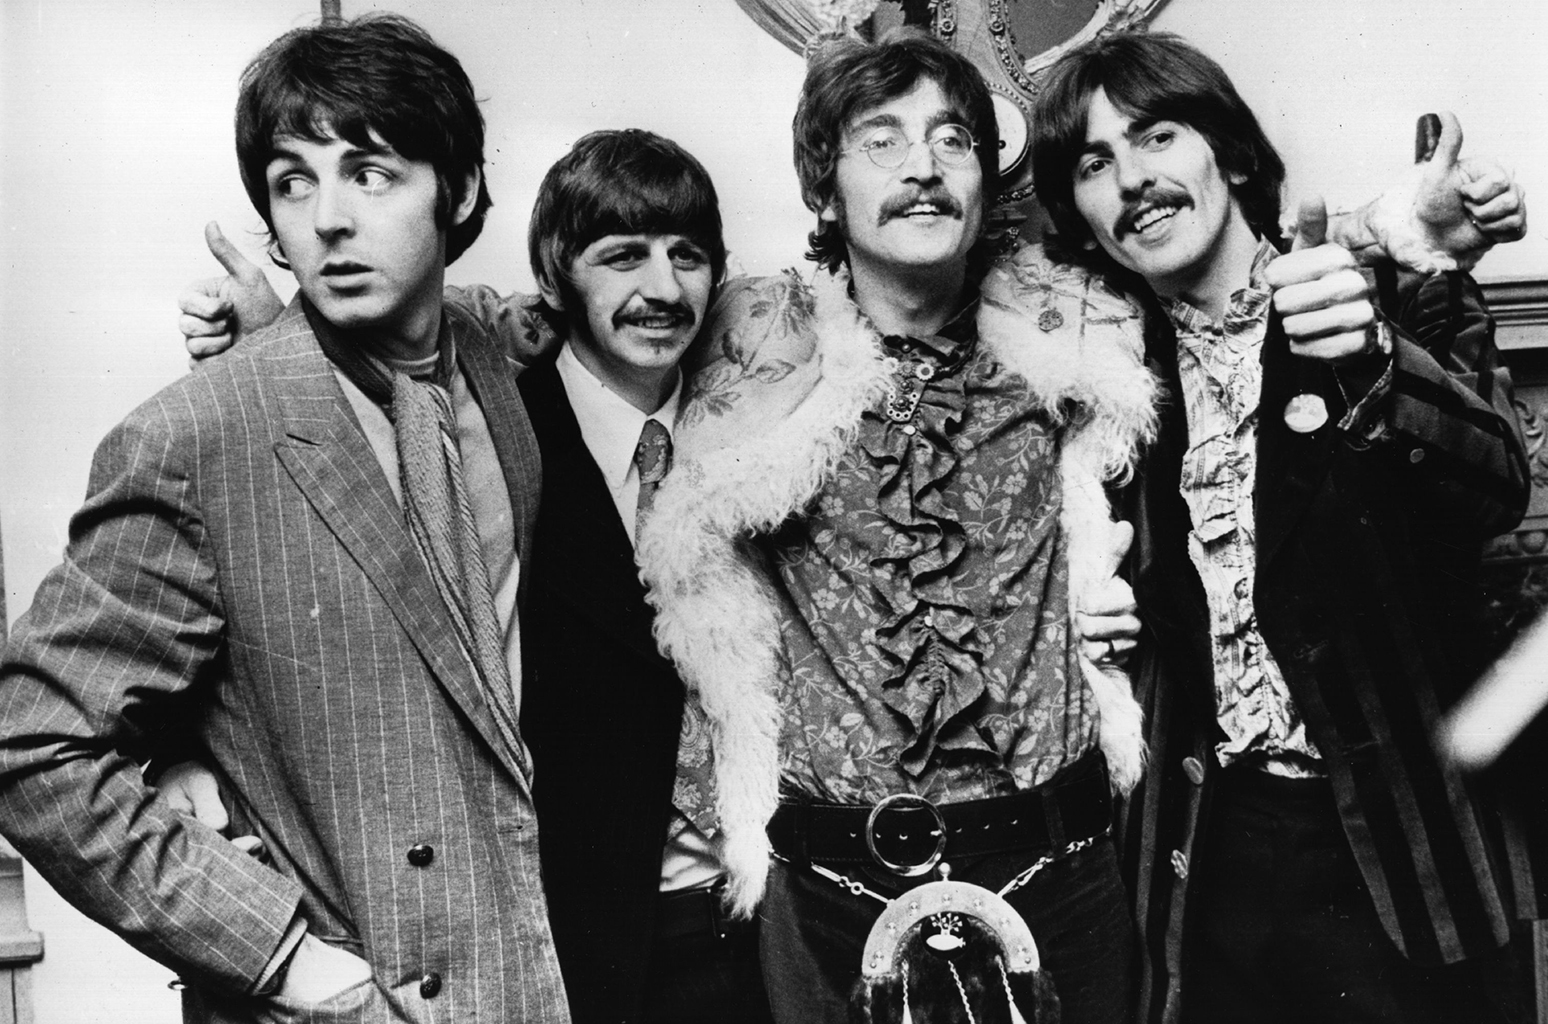 the-beatles-bw-portrait-1967-billboard-1548.jpg